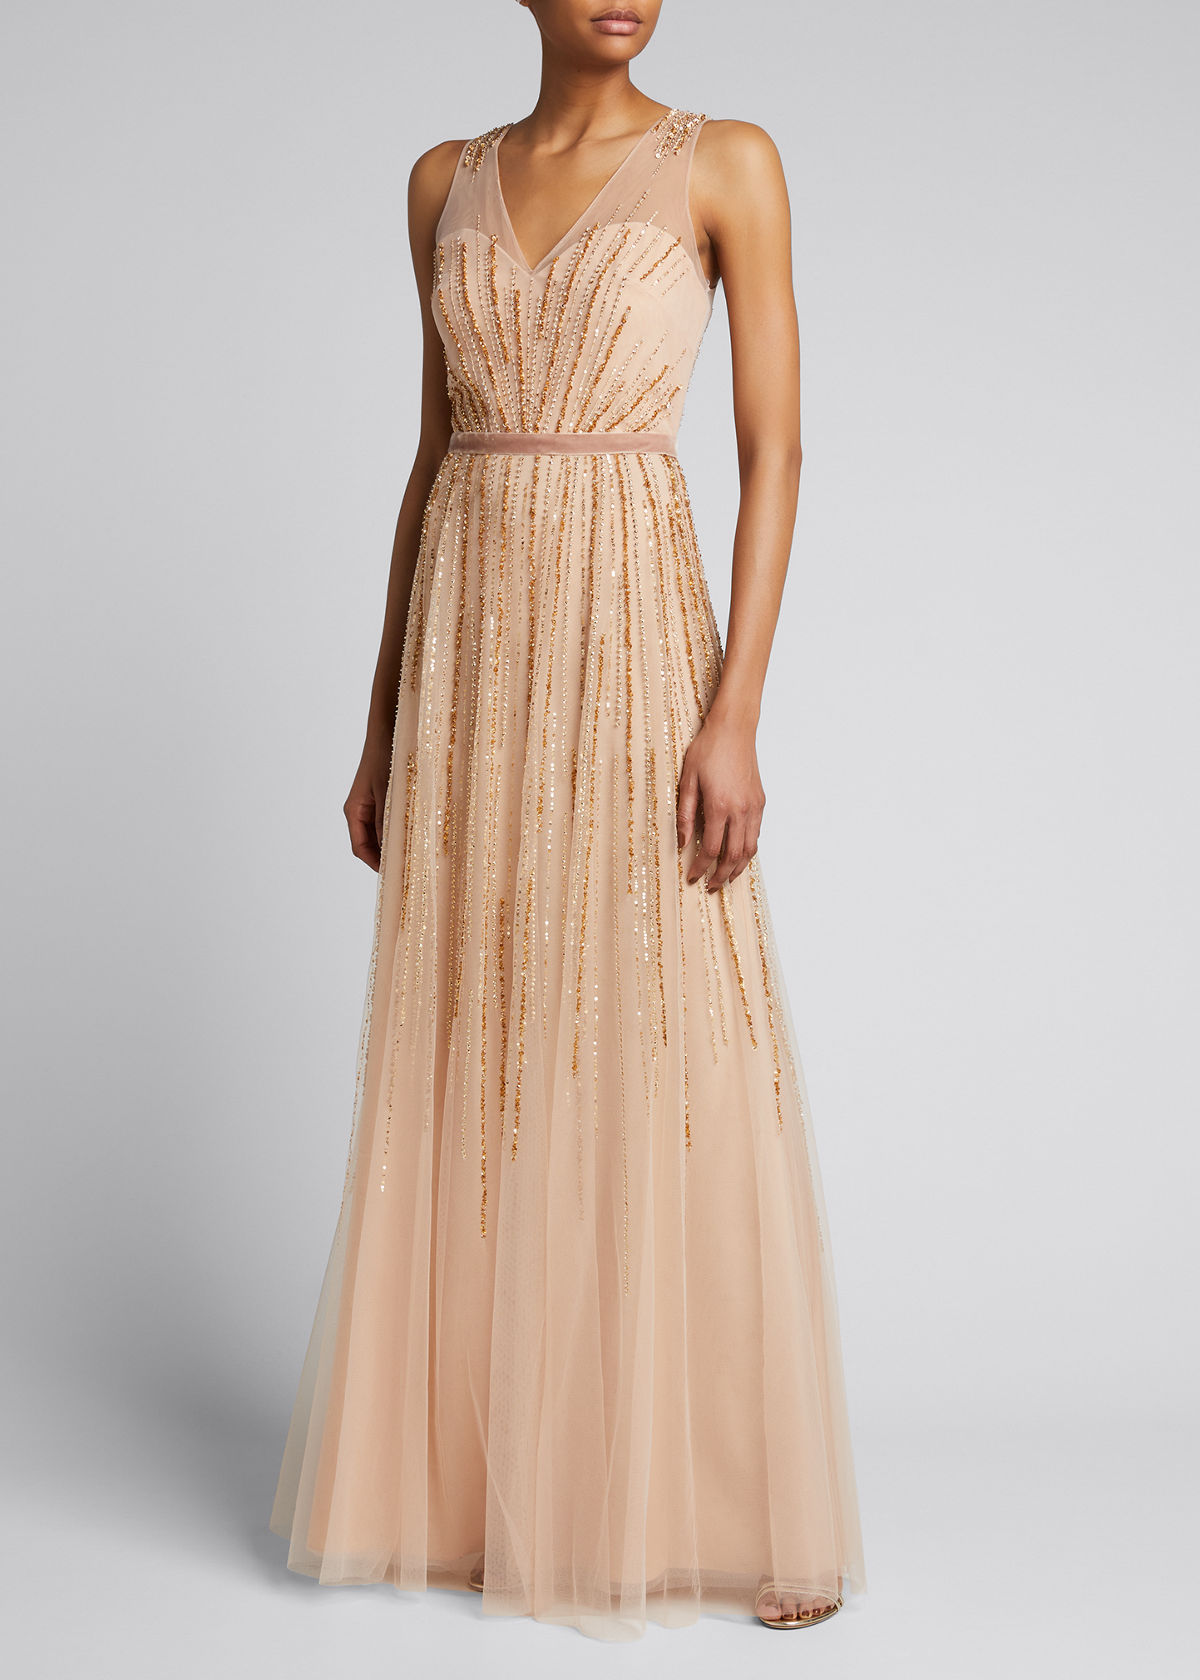 Marchesa Notte V-NECK SLEEVELESS BEADED TULLE A-LINE GOWN